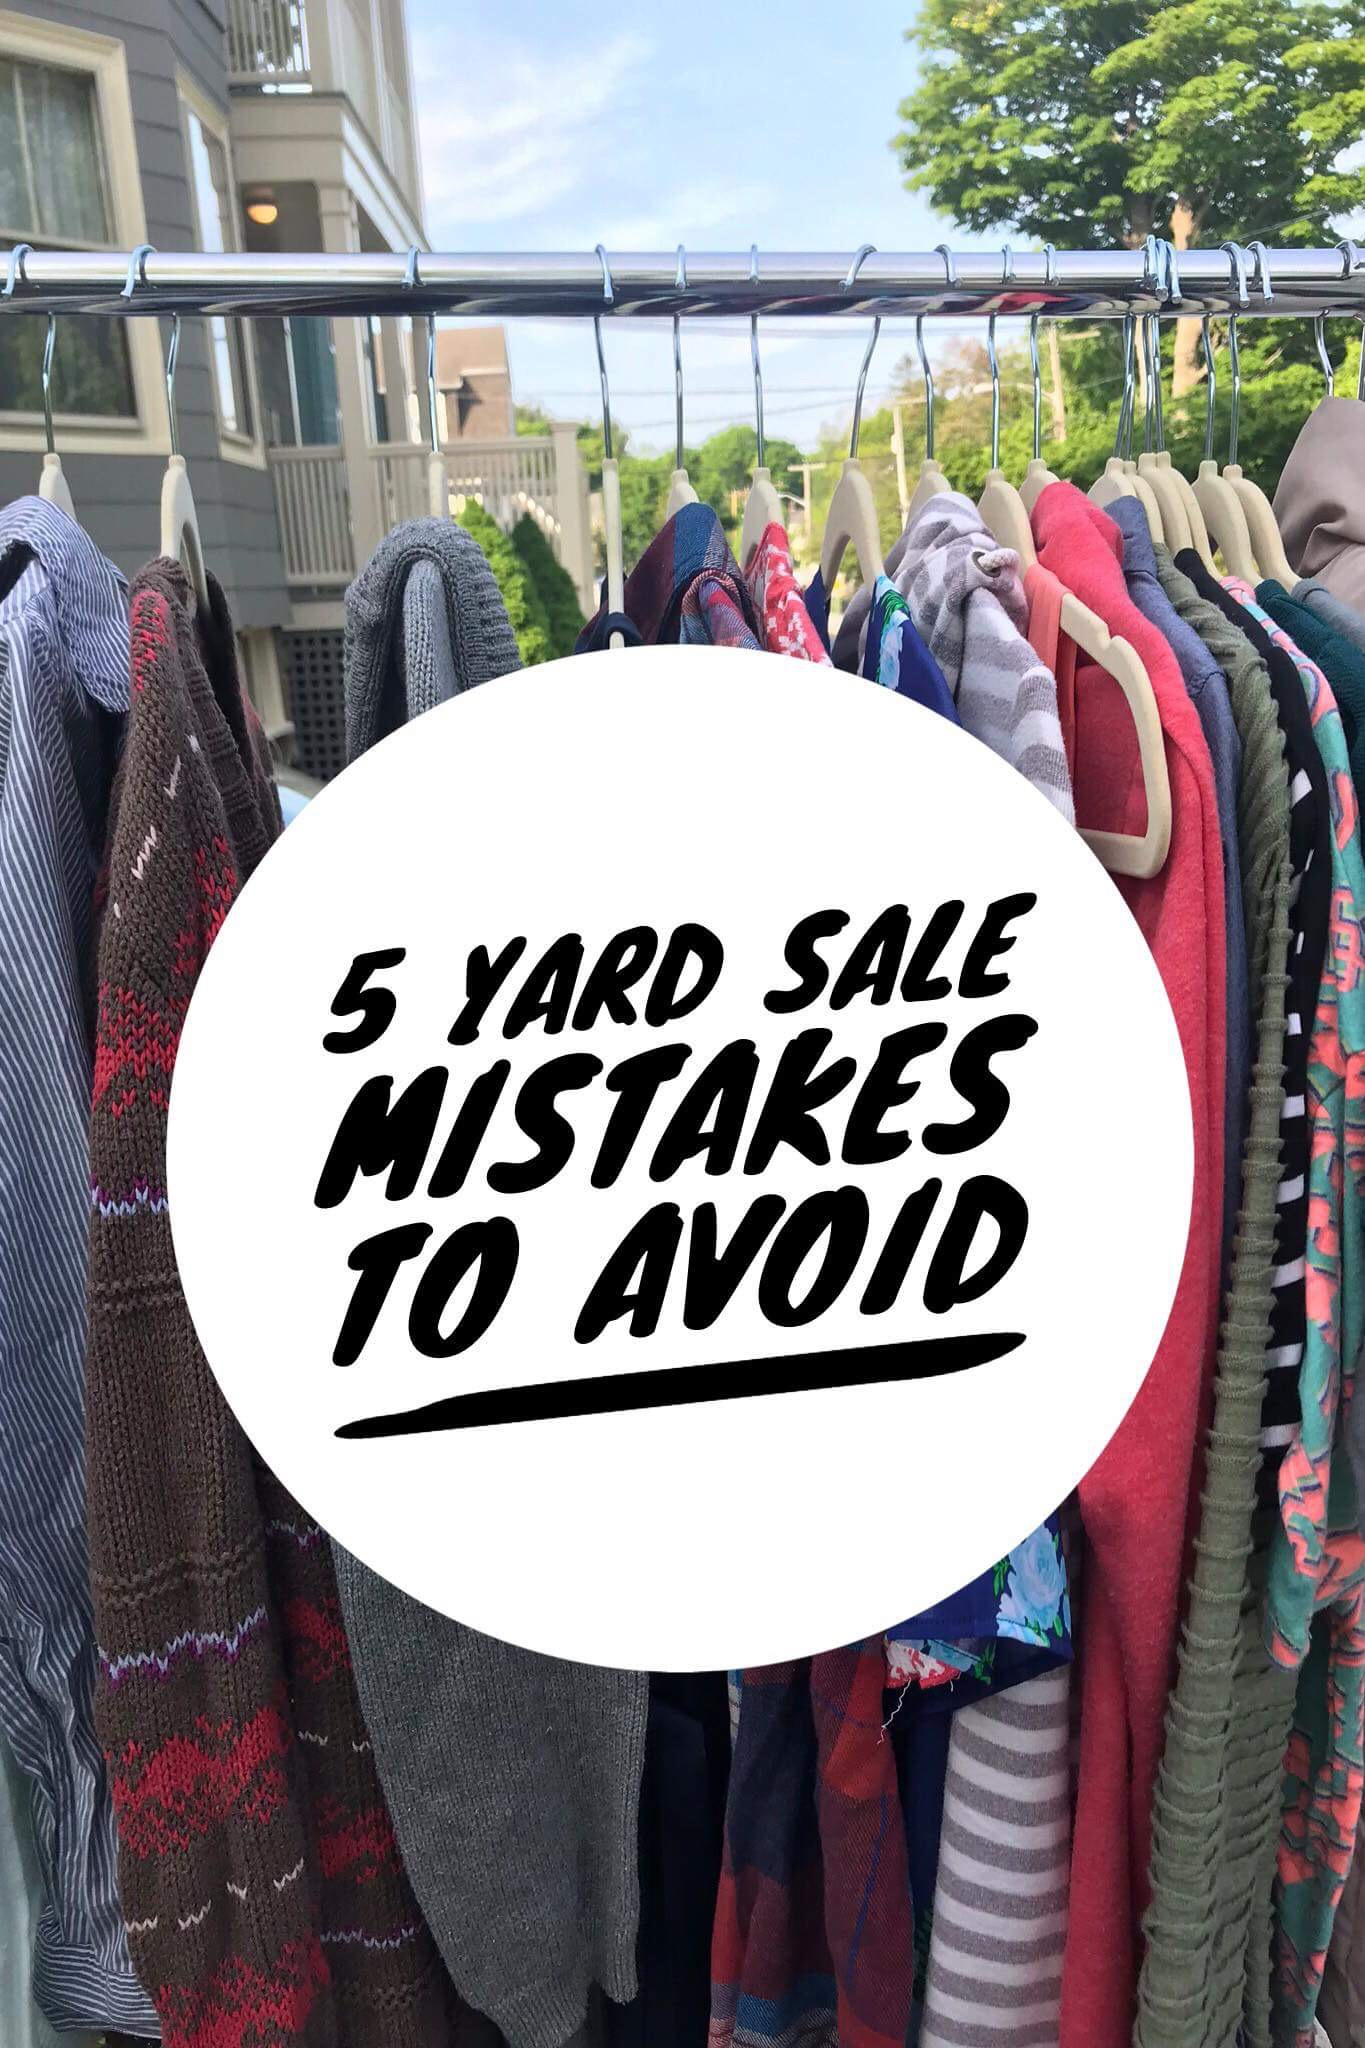 5 yard sale mistakes to avoid